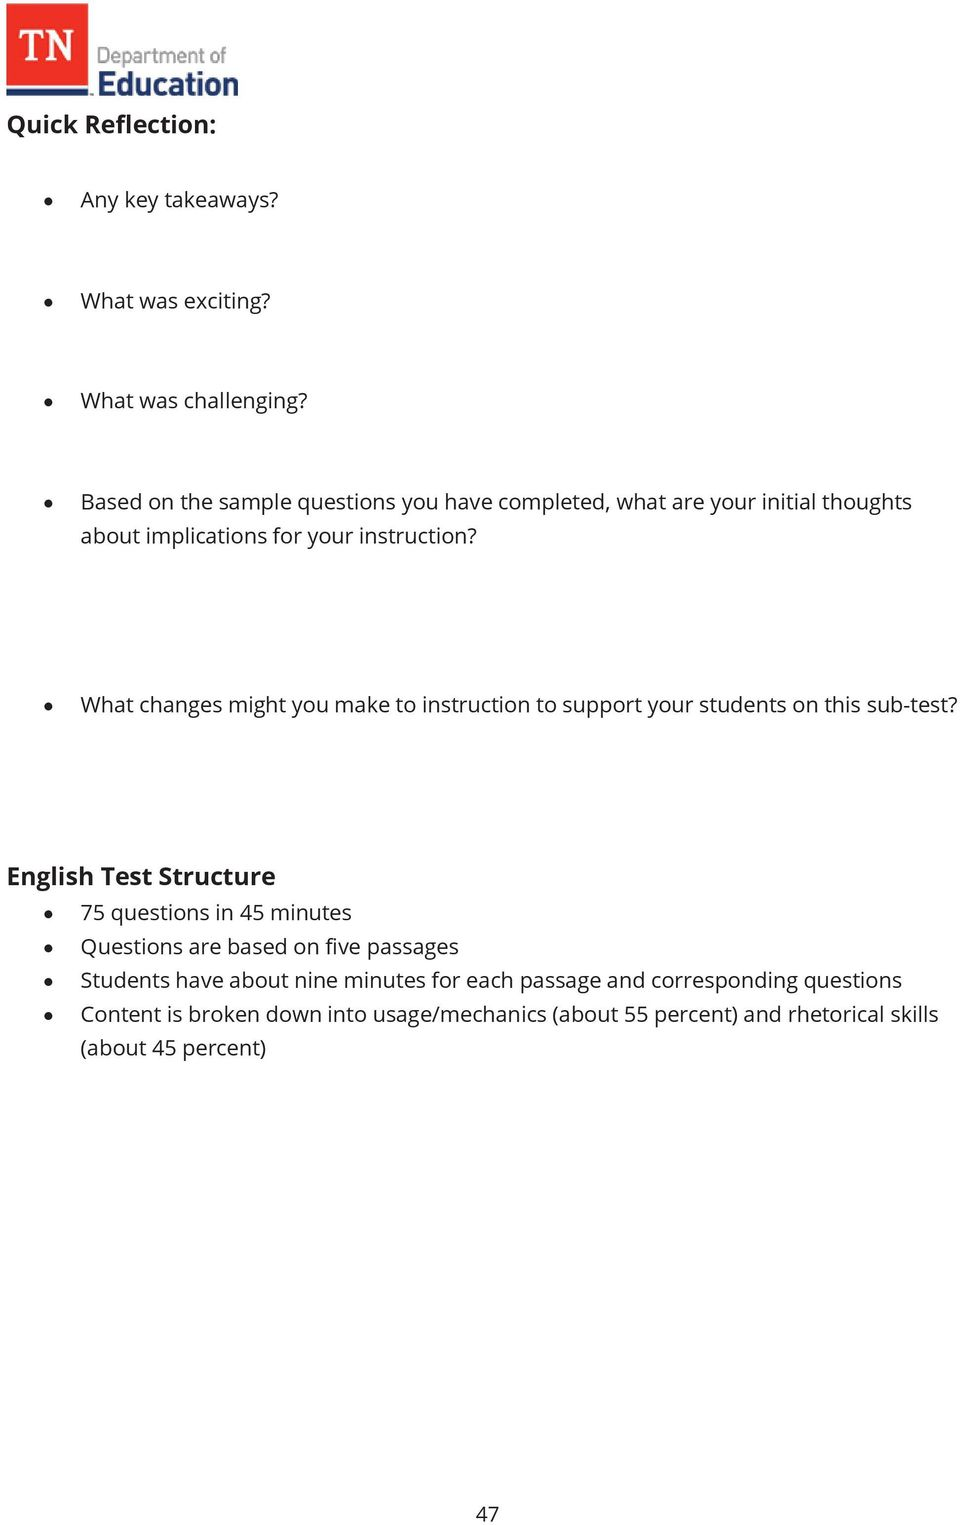 What changes might you make to instruction to support your students on this sub-test?